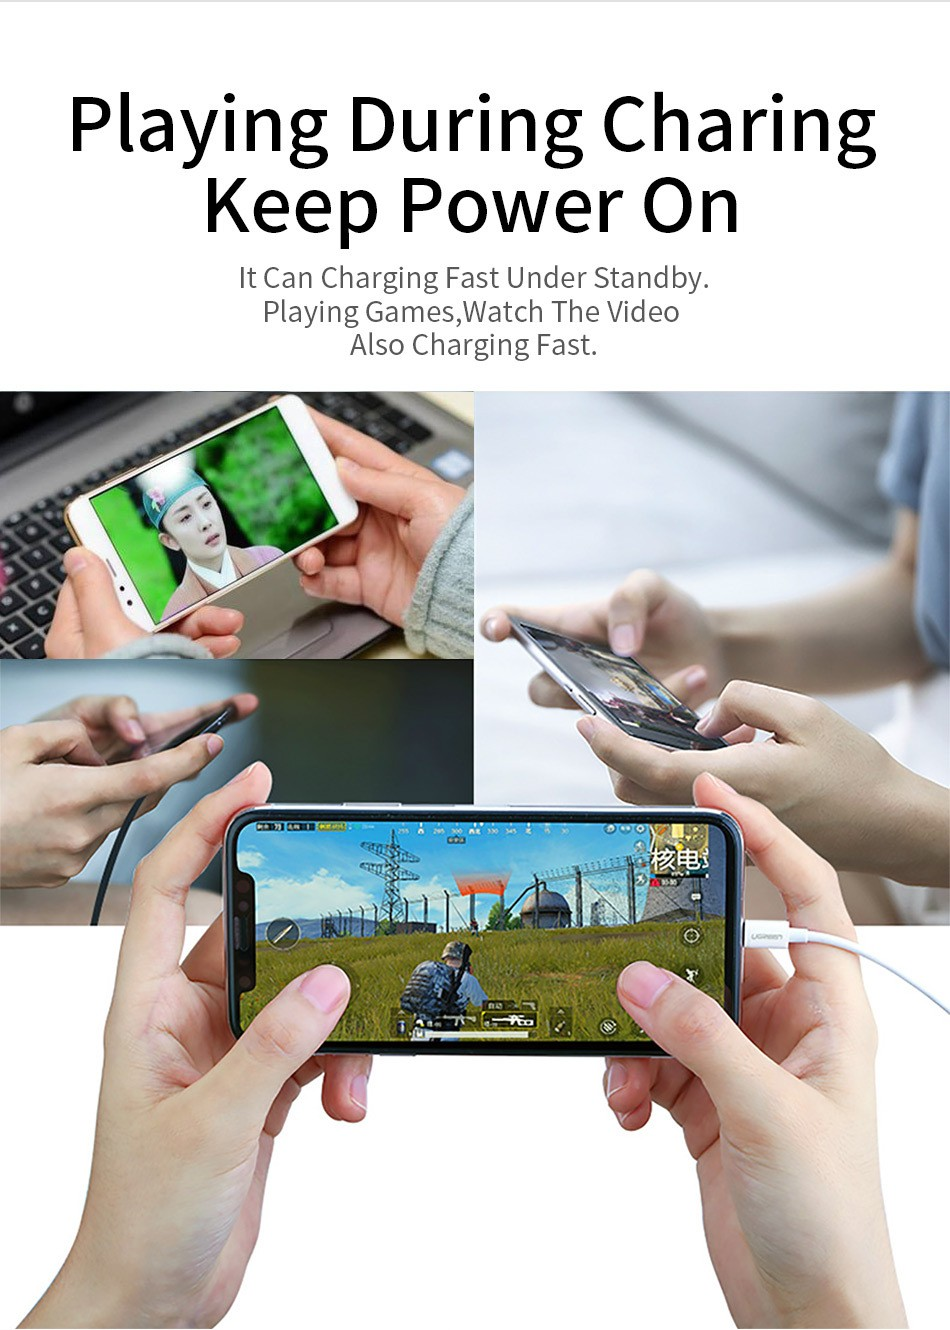 UC3746 Charger Playing During Charing, Keep power on